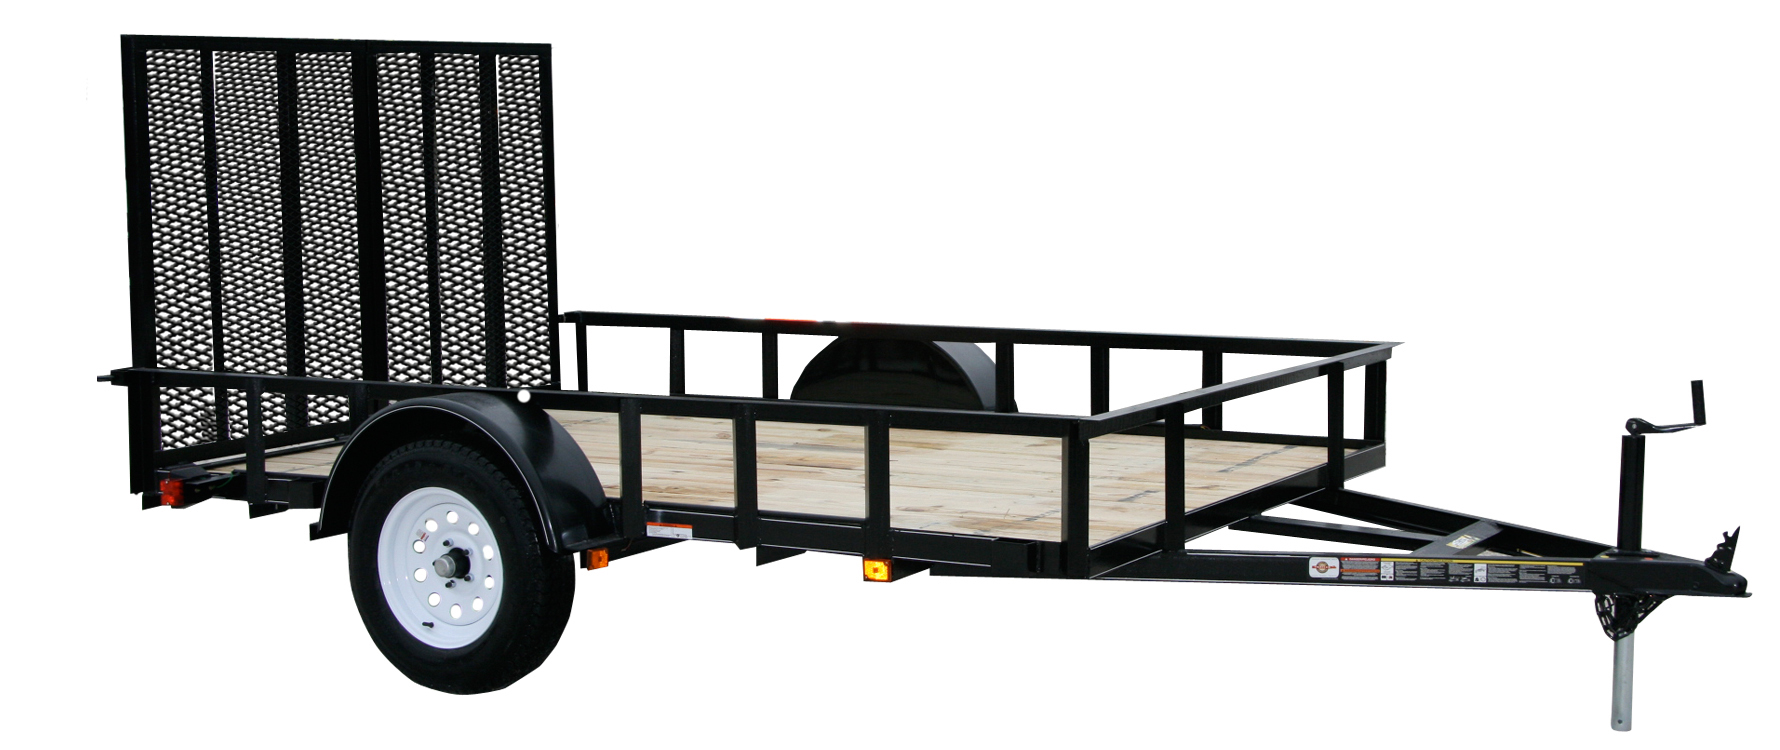 6x10gw Carry On Trailer